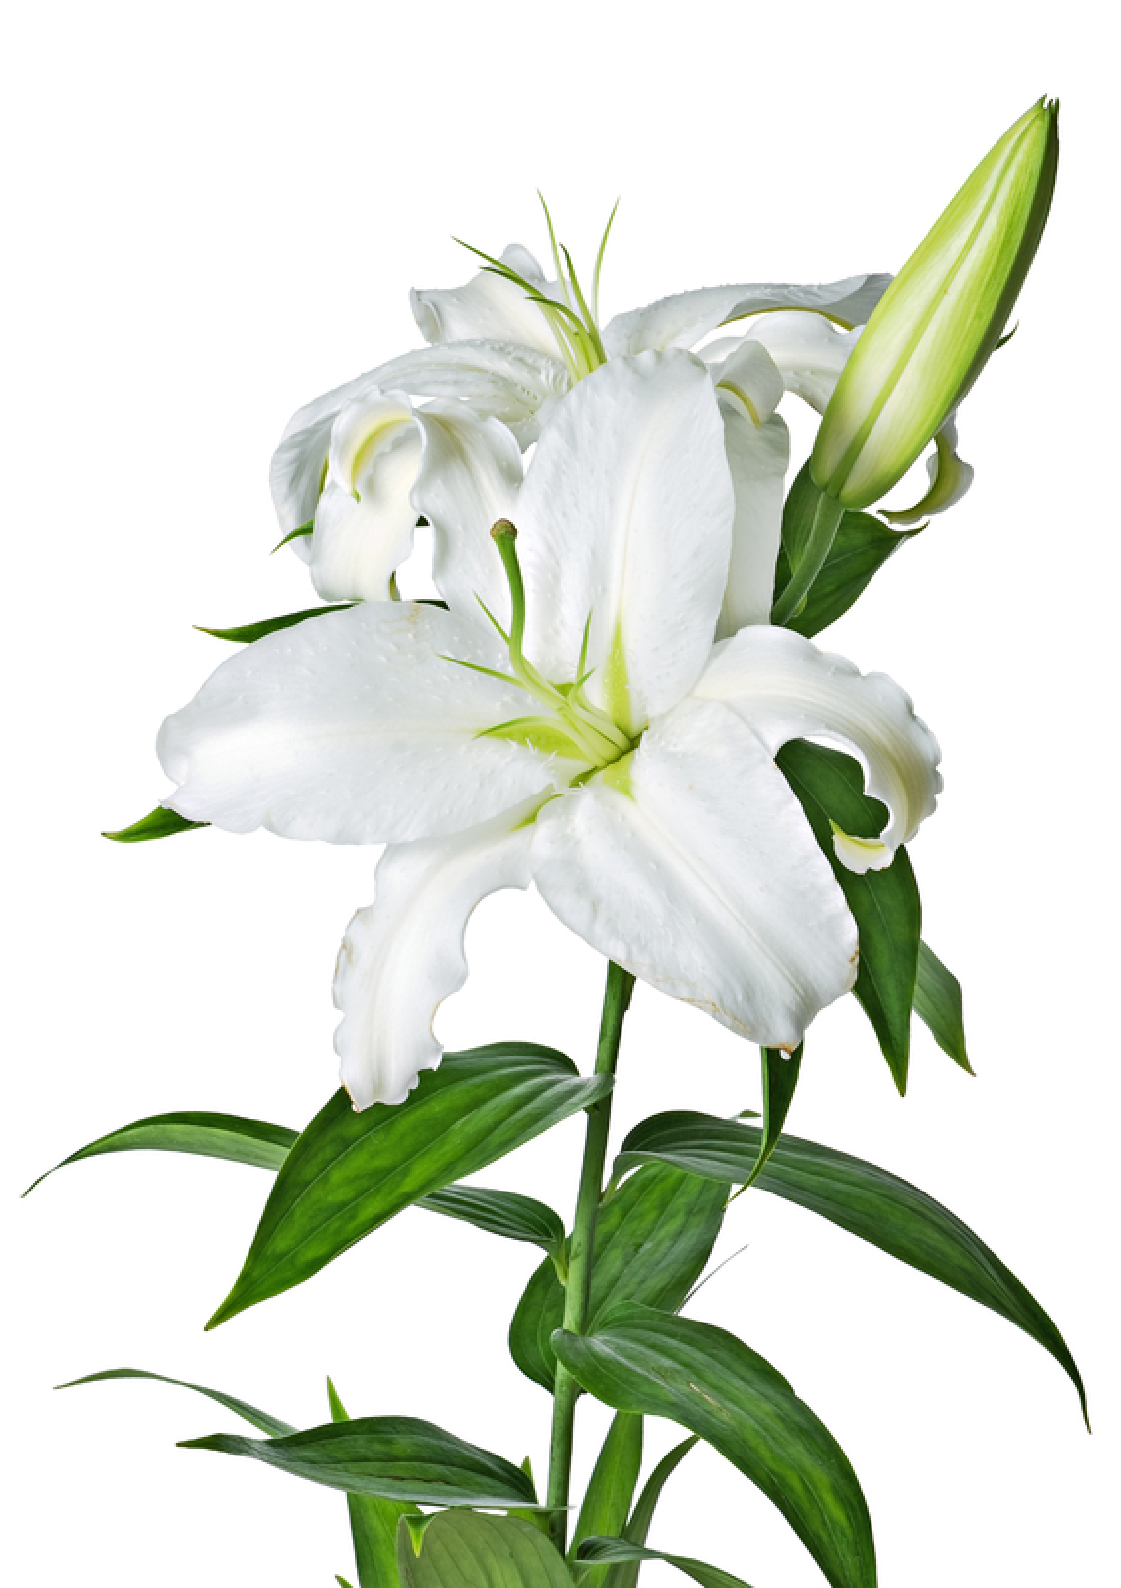 Lily clipart funeral flower. Lilys site white lilies